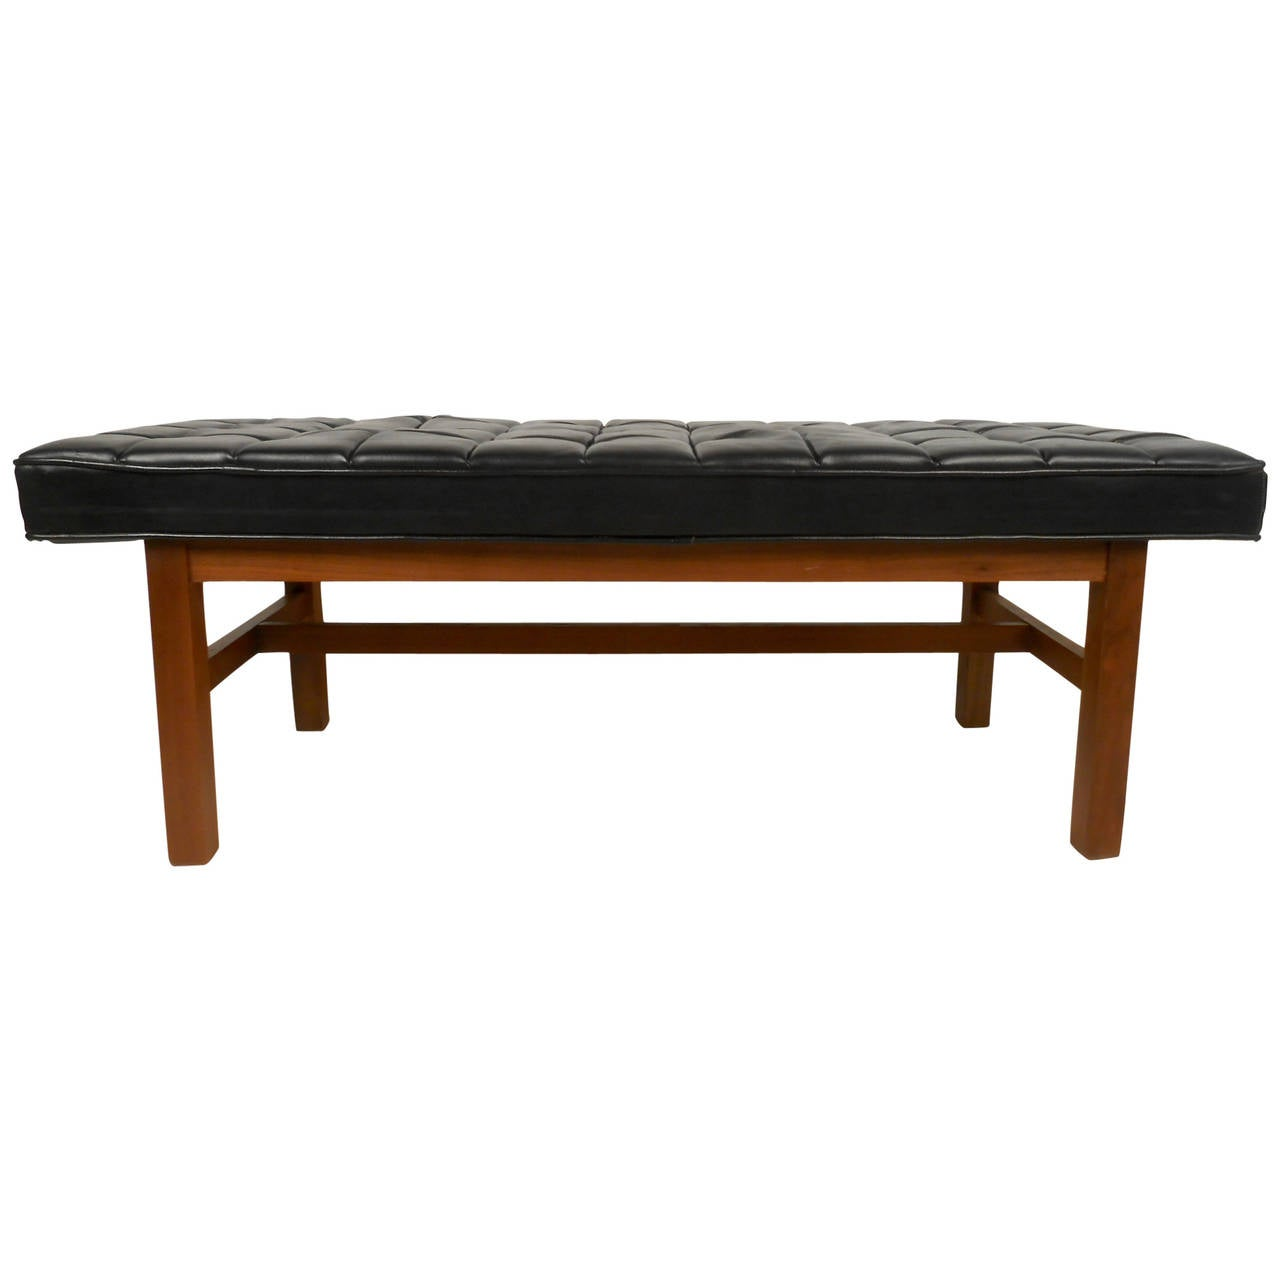 Mid century modern tufted vinyl bench for sale at stdibs